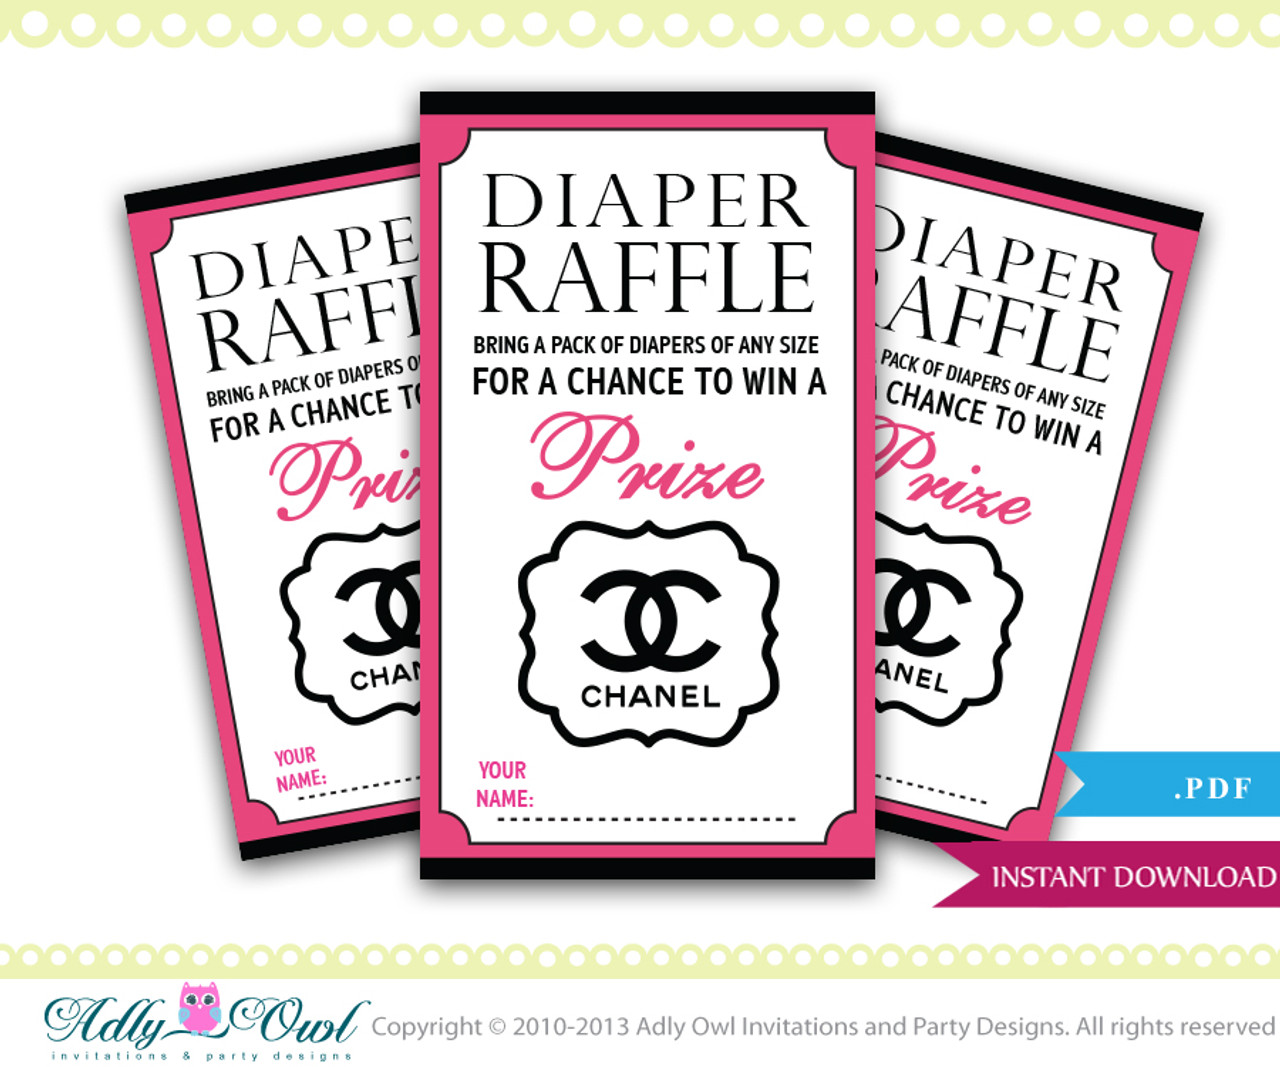 photograph regarding Chanel Printable named Chanel Diaper Raffle for Boy or girl Shower Printable tickets for a significant style kid shower, sophisticated, cly, amazing - Merely electronic history - ao67